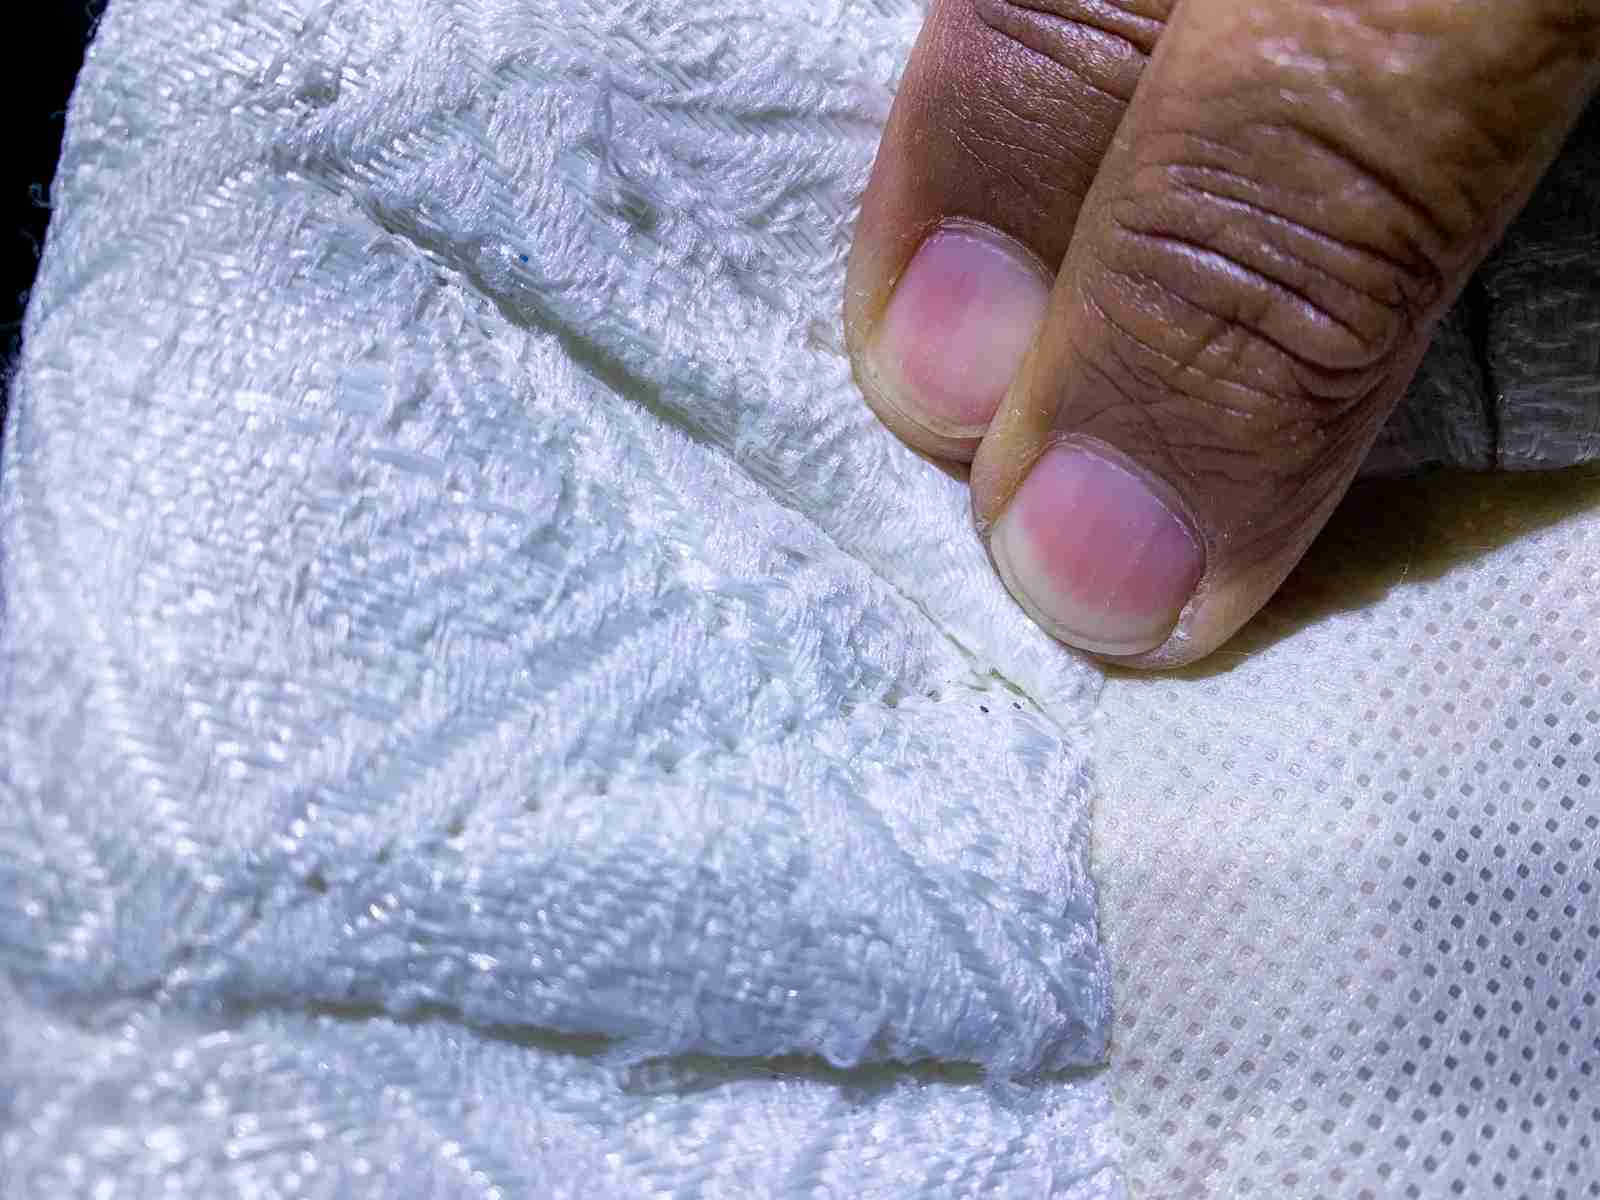 Mattress folds are a great place to look for evidence of bed bugs (Photo by Summer Hull/The Points Guy)